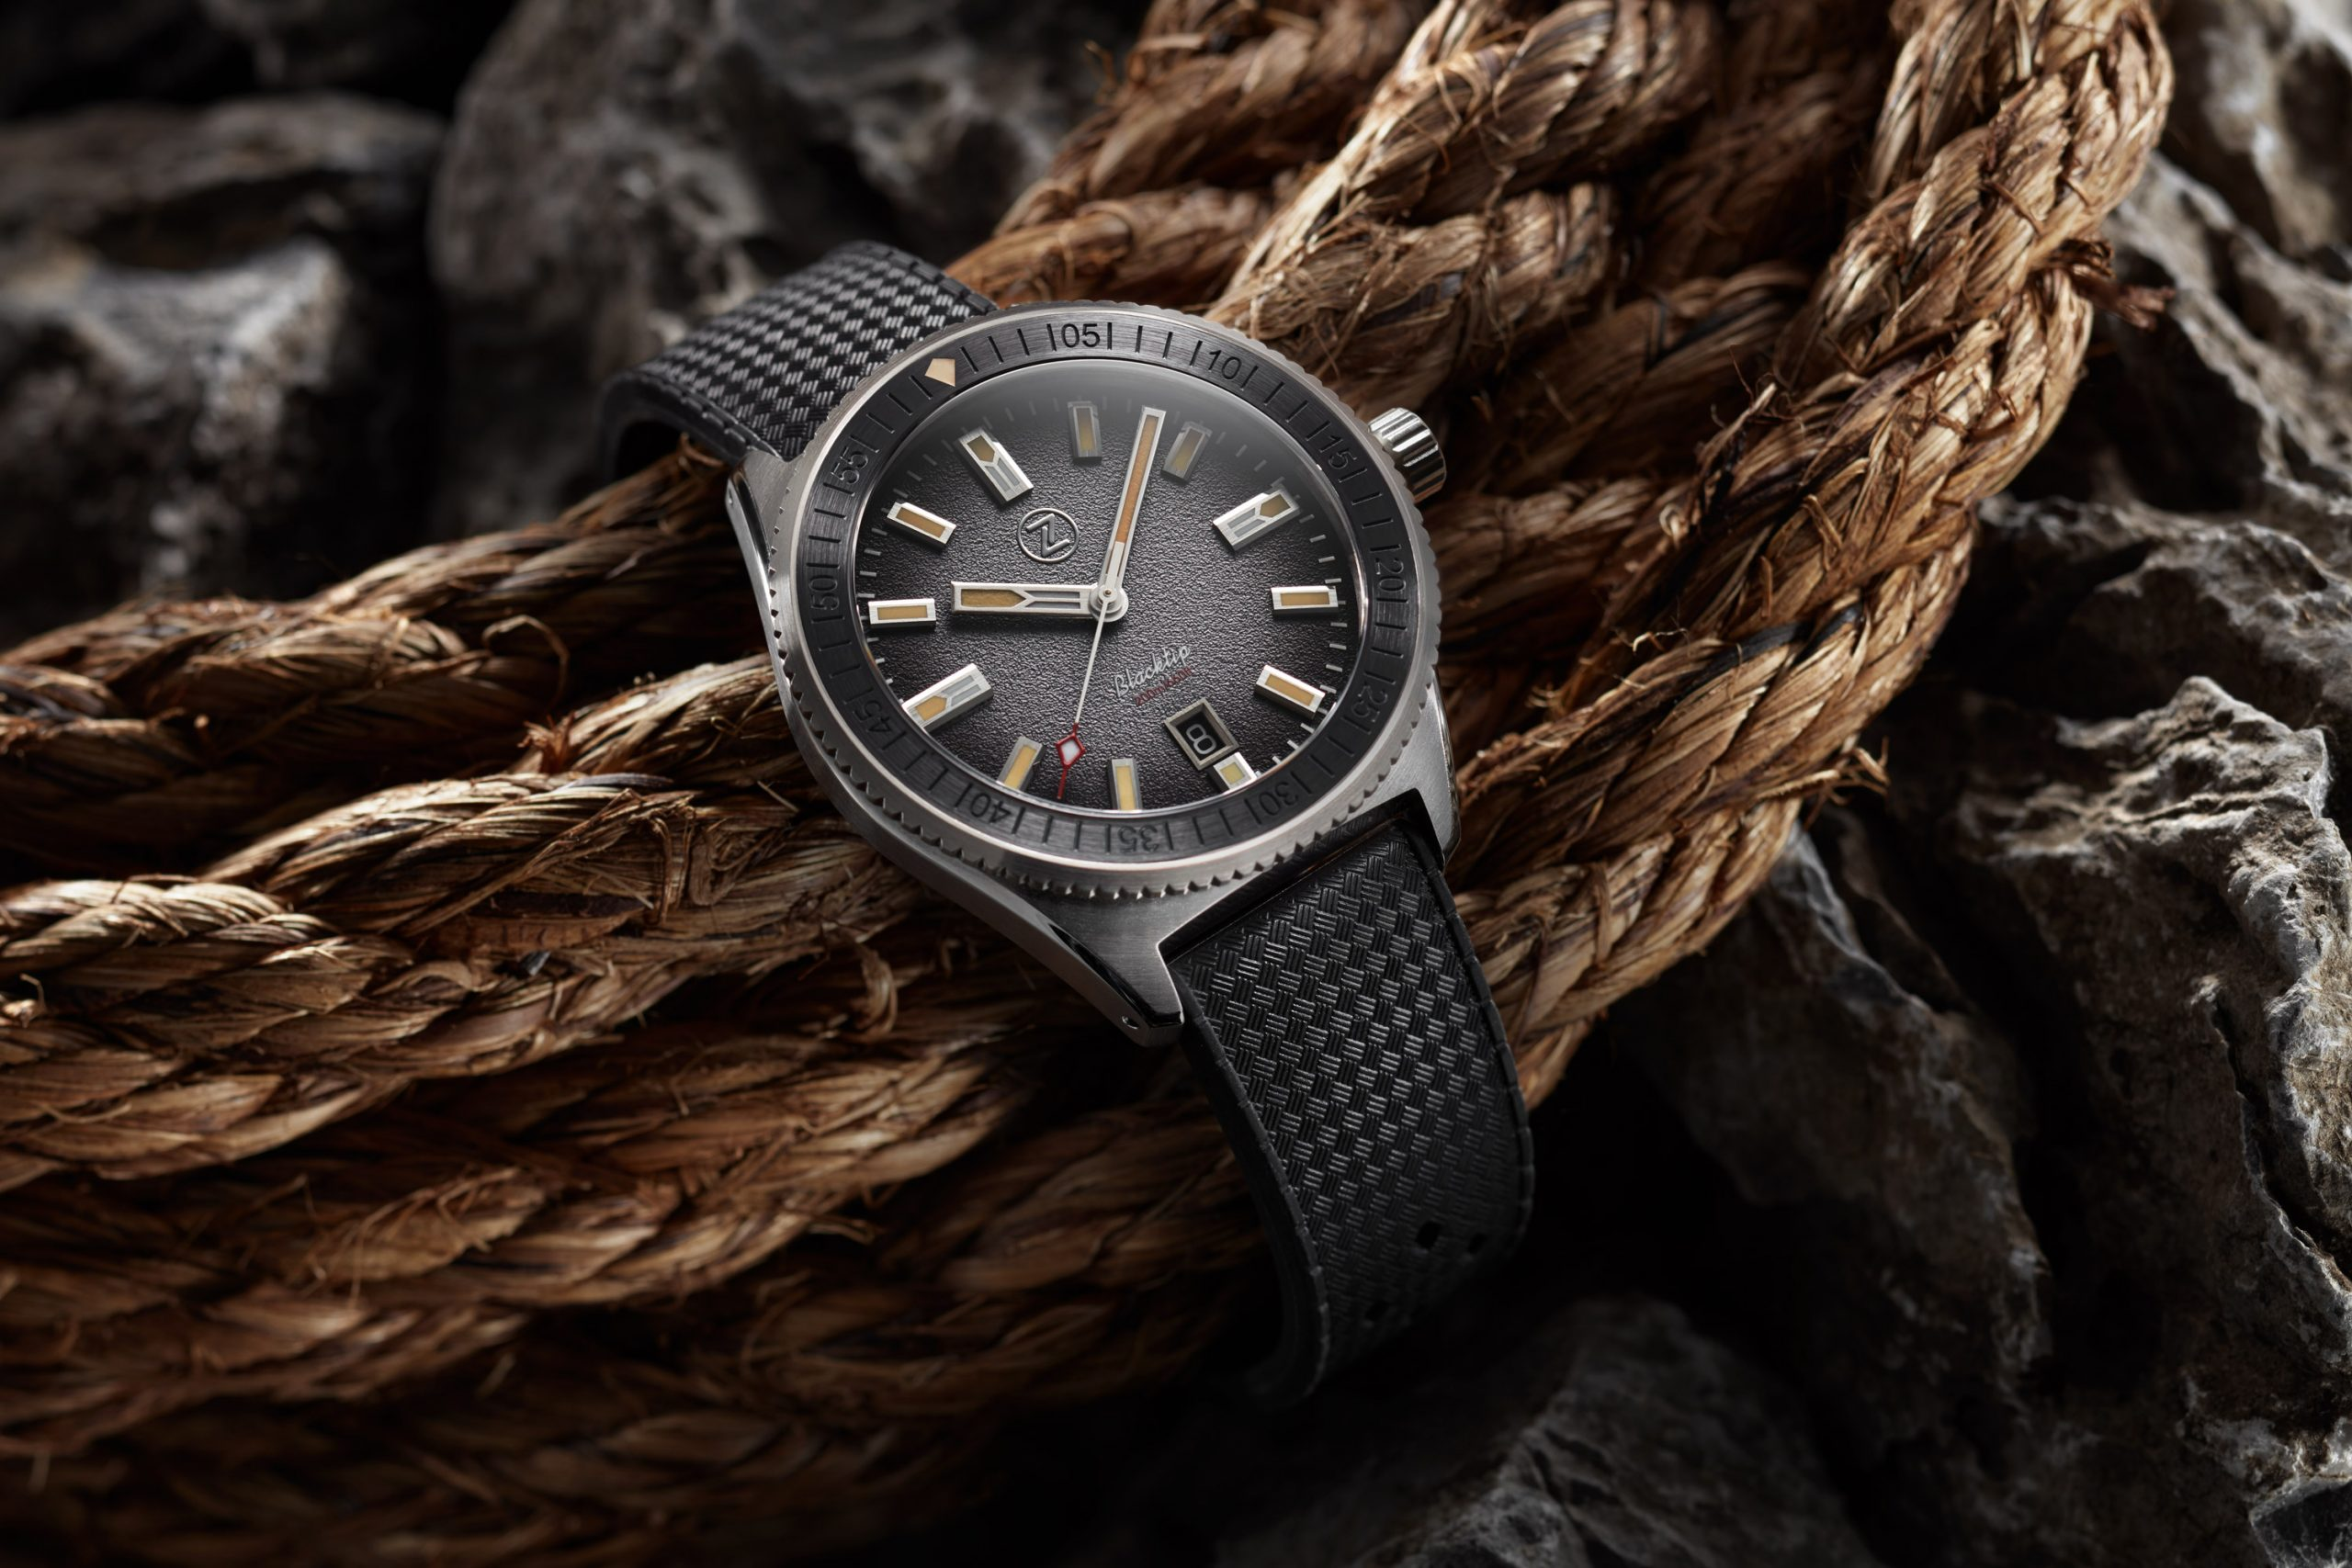 INTRODUCING: The Zelos Watches Blacktip 200m is one of the best-value divers around